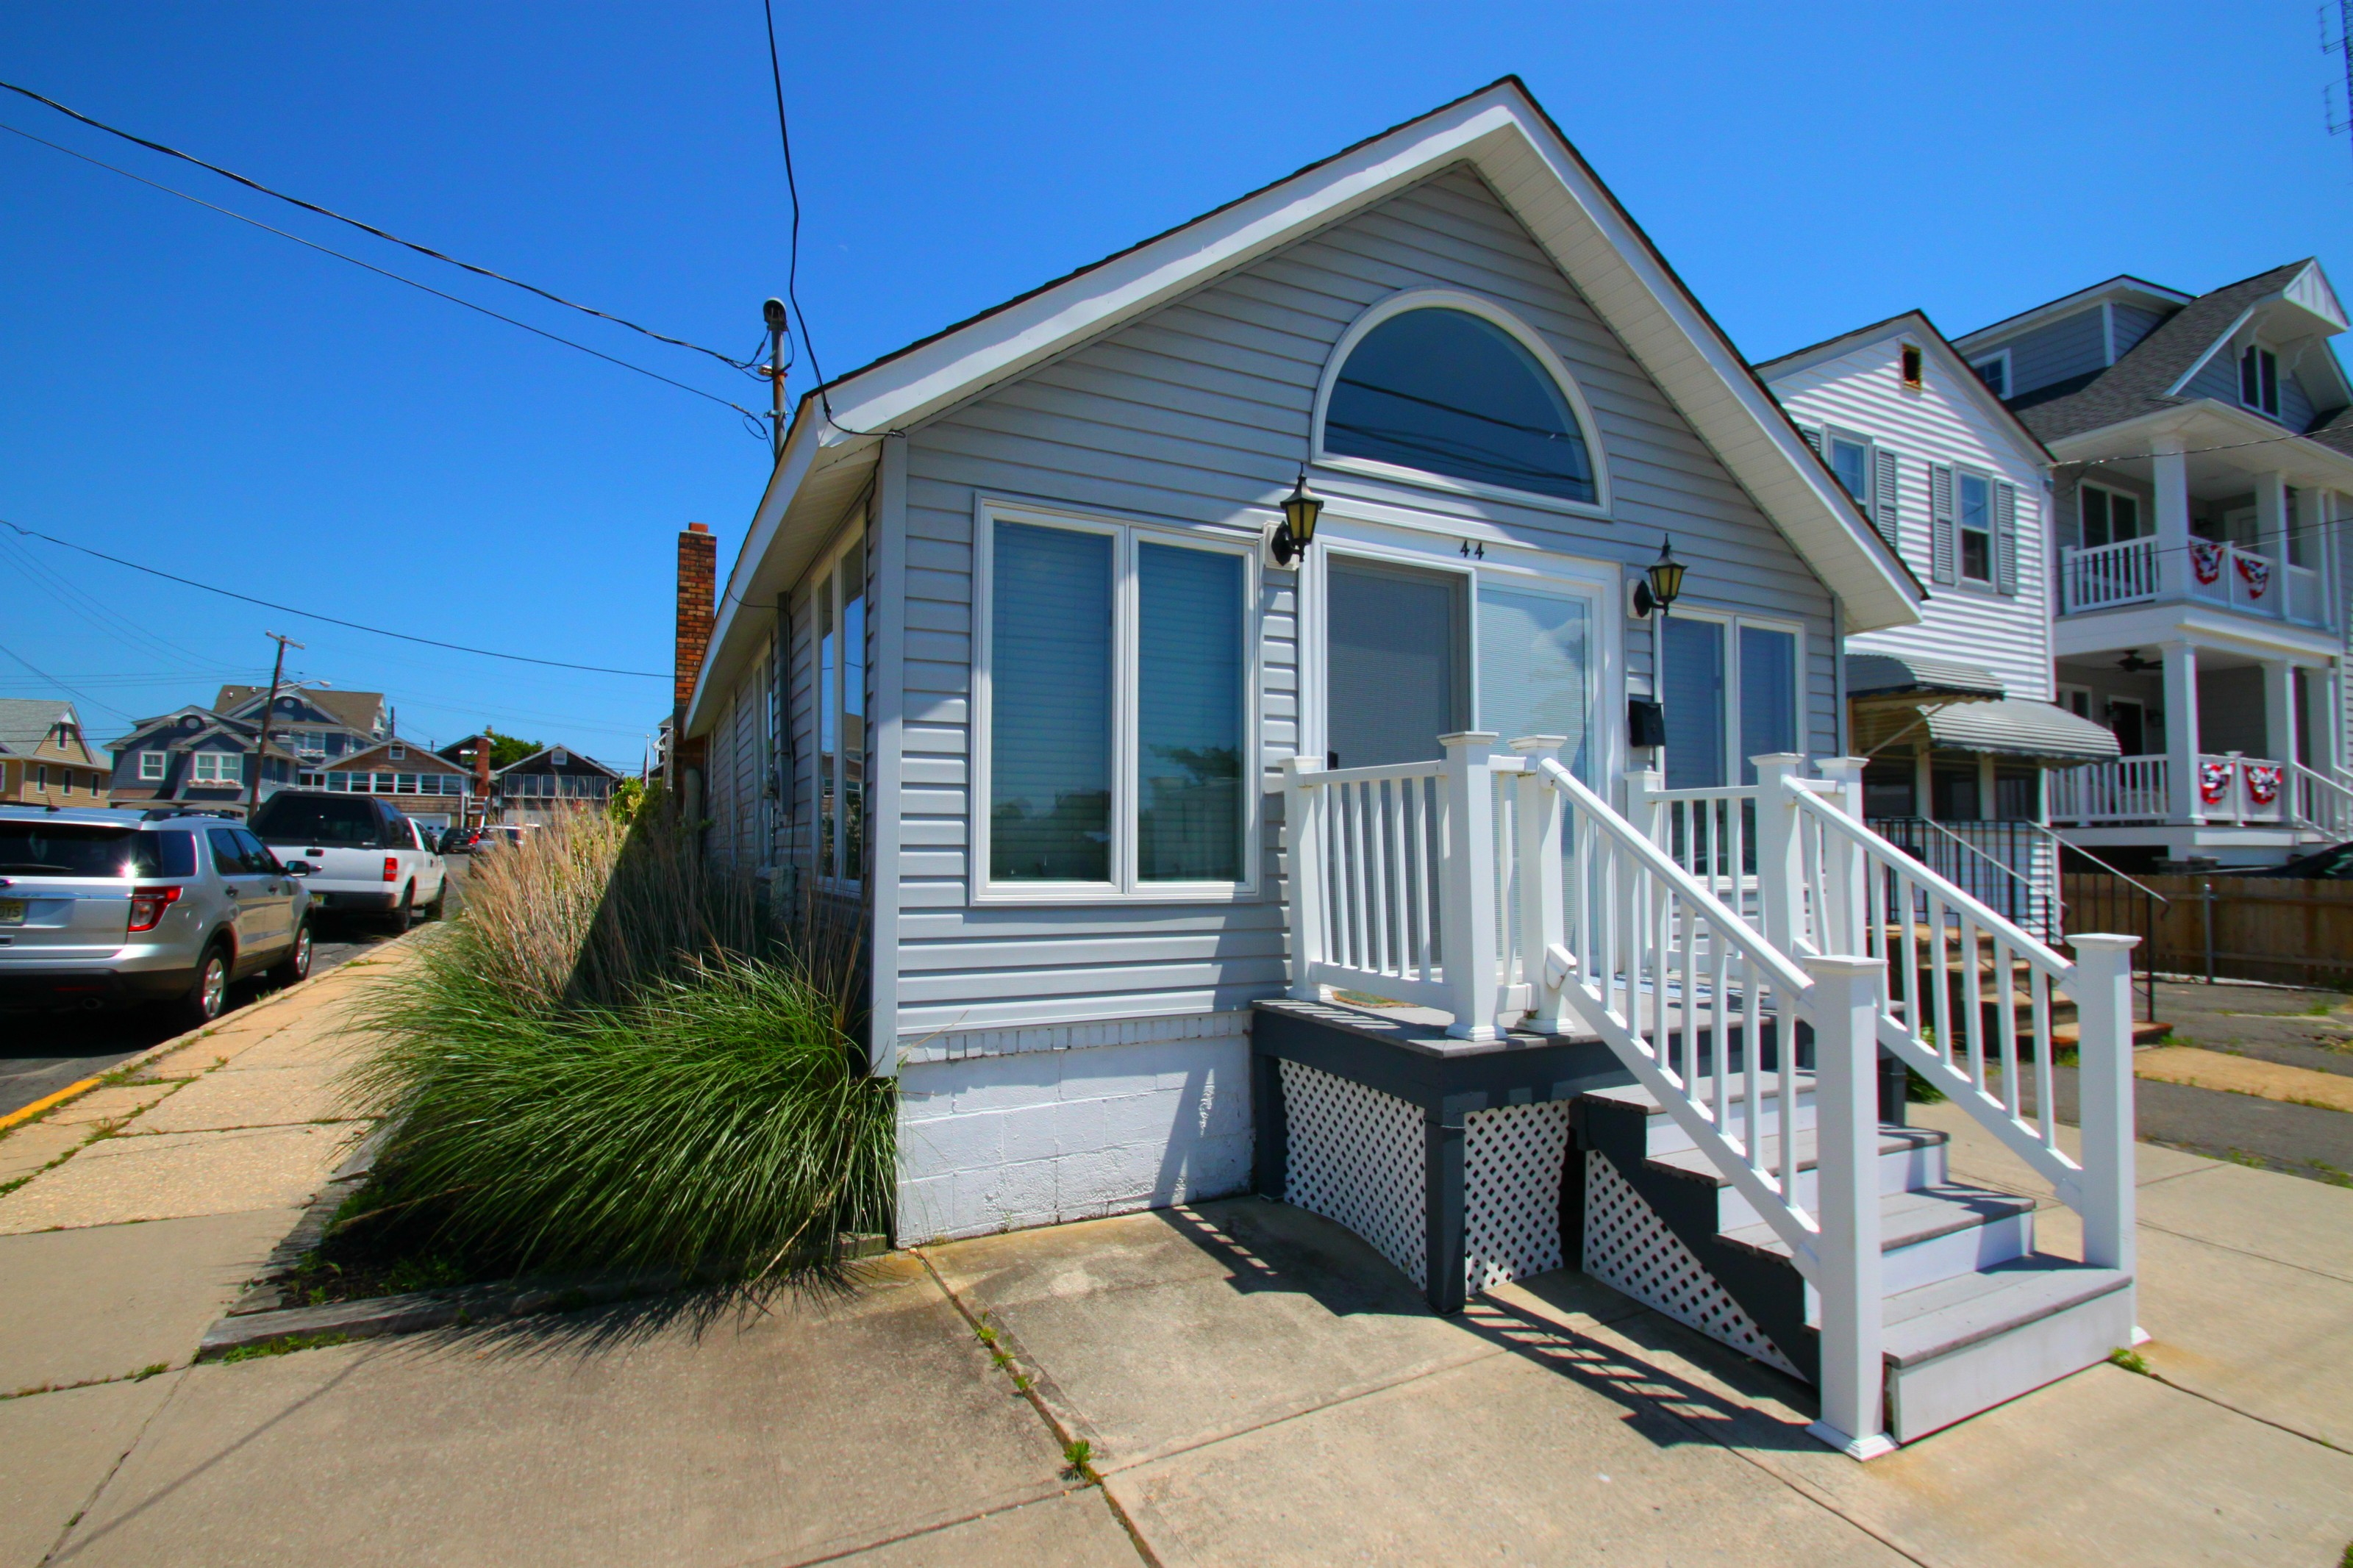 Single Family Home for Sale at North End Location 44 2nd Ave Manasquan, New Jersey 08736 United States